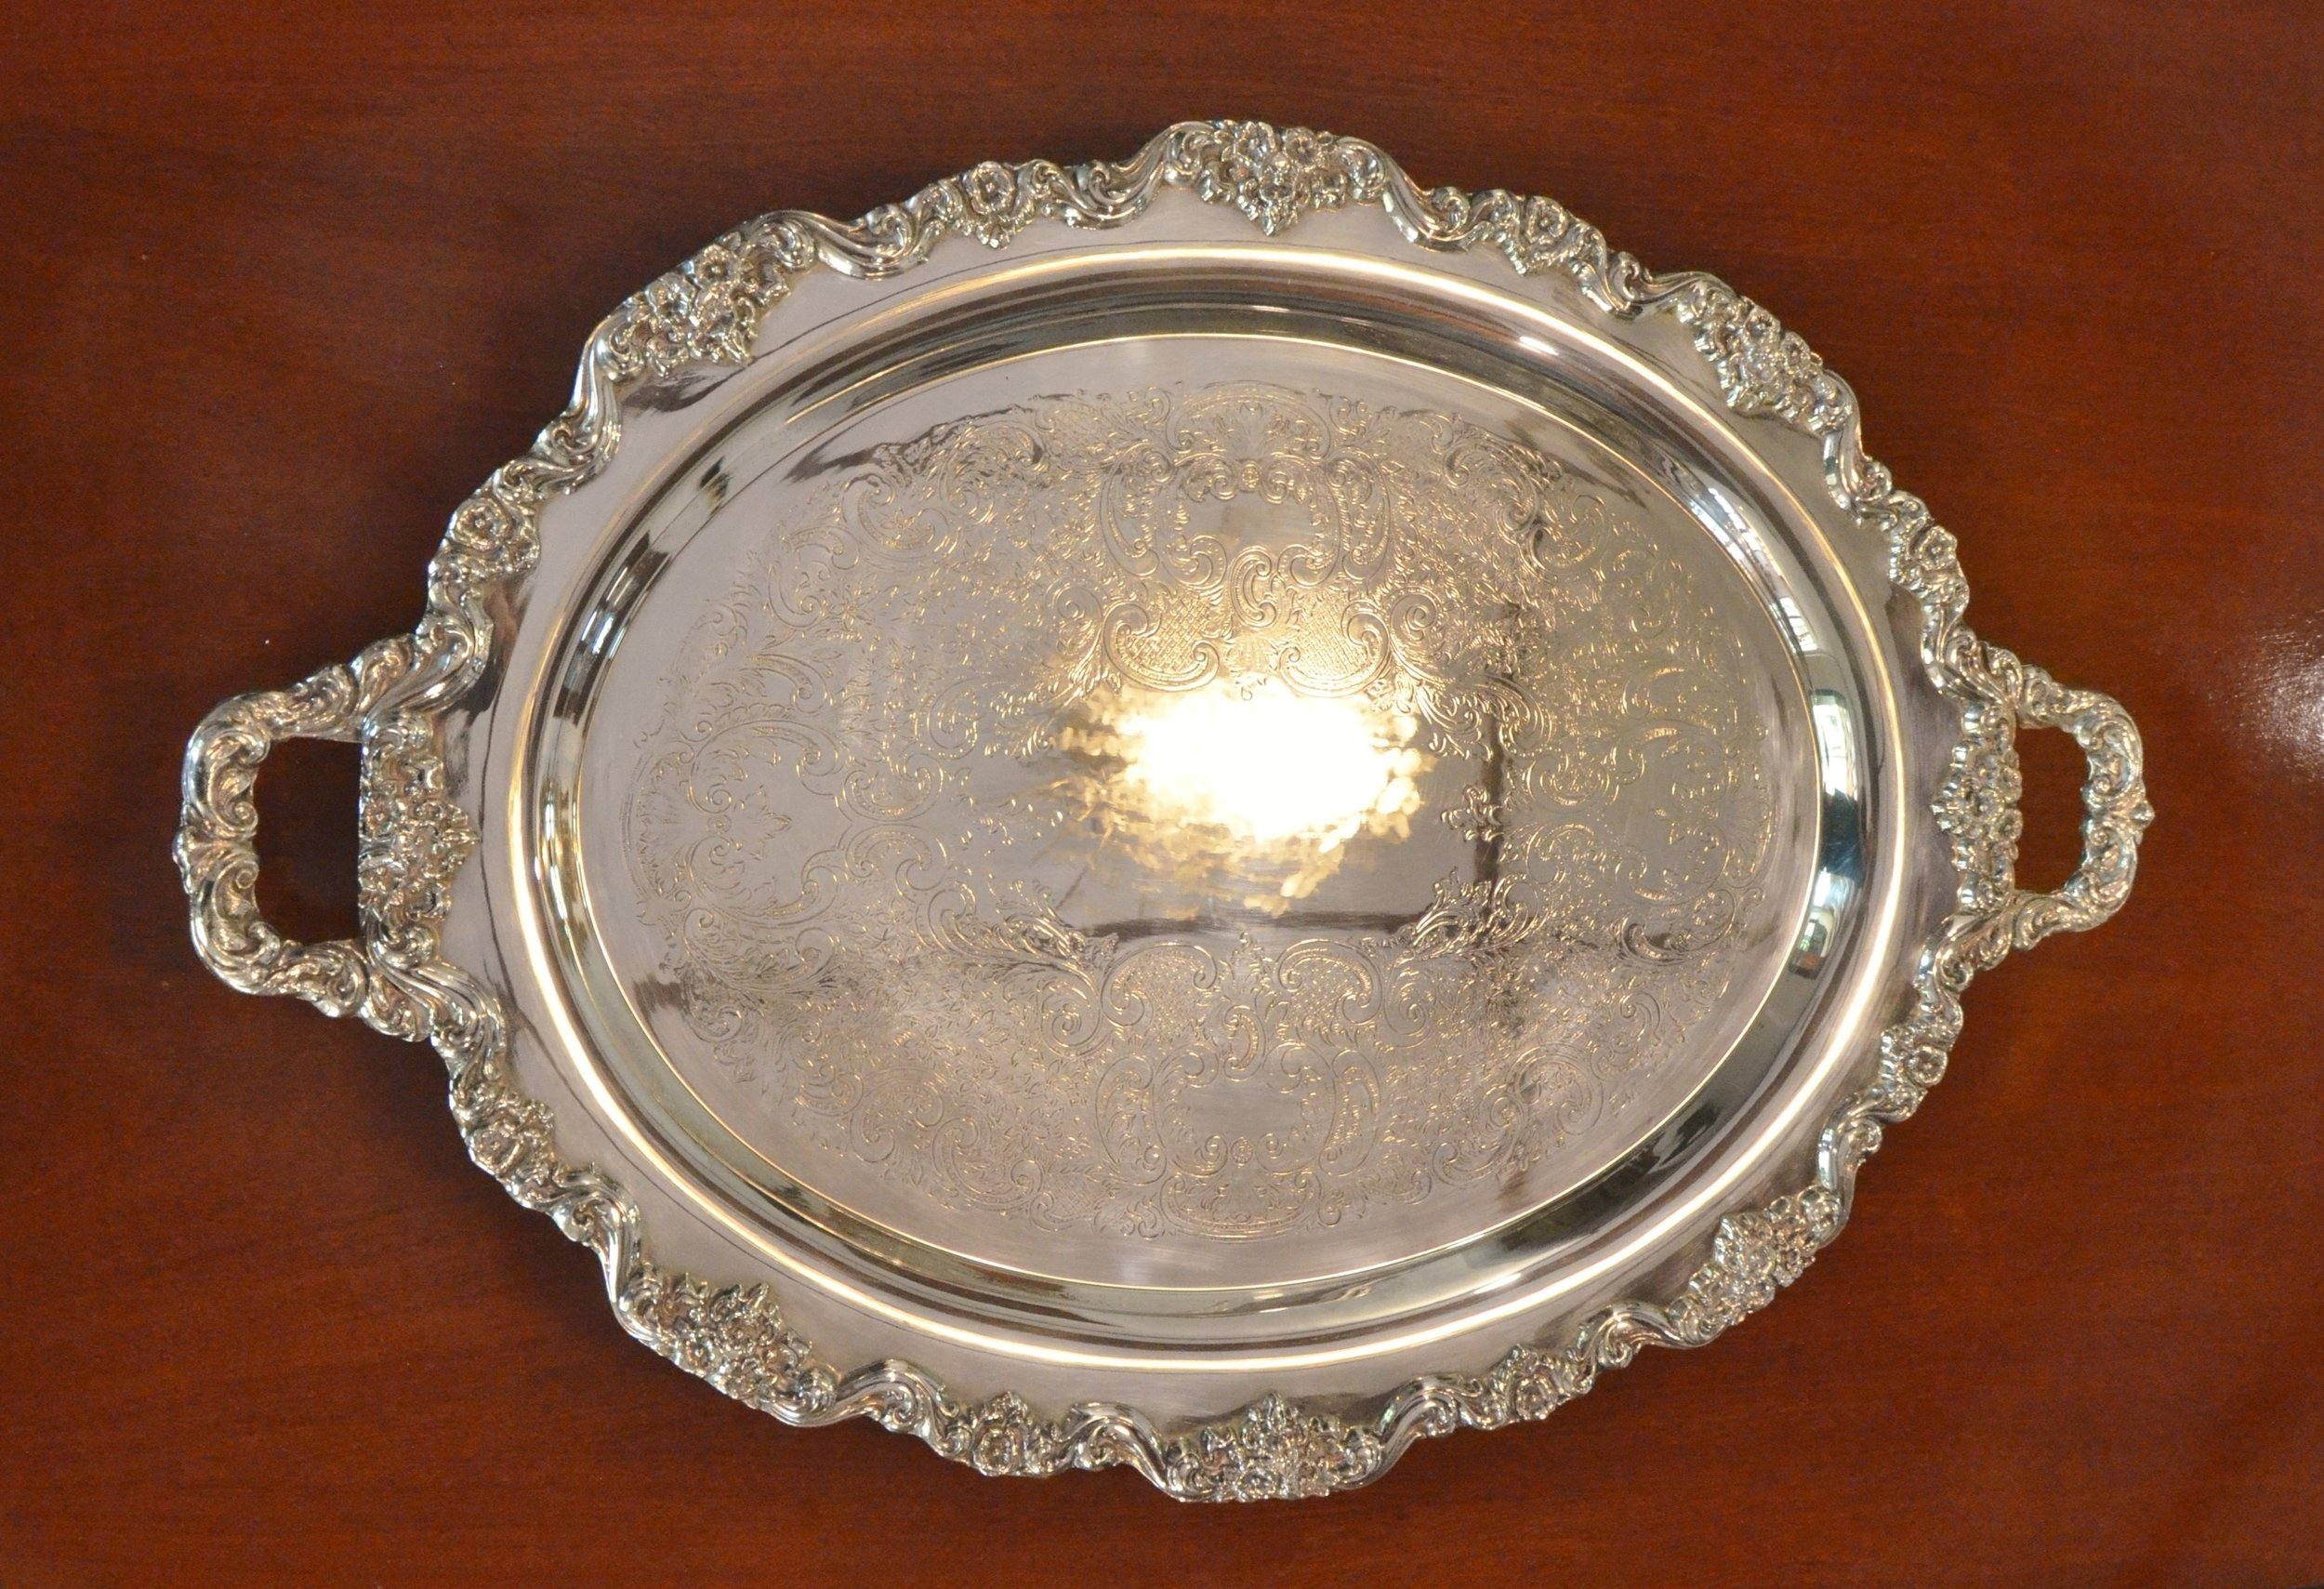 "GORGEOUS LARGE  OVAL SILVER TRAY   30"" X 20""  Victorian. Circa 1890-1910. Perfect condition. Very large tray with beautiful chasing. It weighs 13 pounds, very heavy quality piece.   View more photos of this item    Price upon request.  Private viewing by appointment."